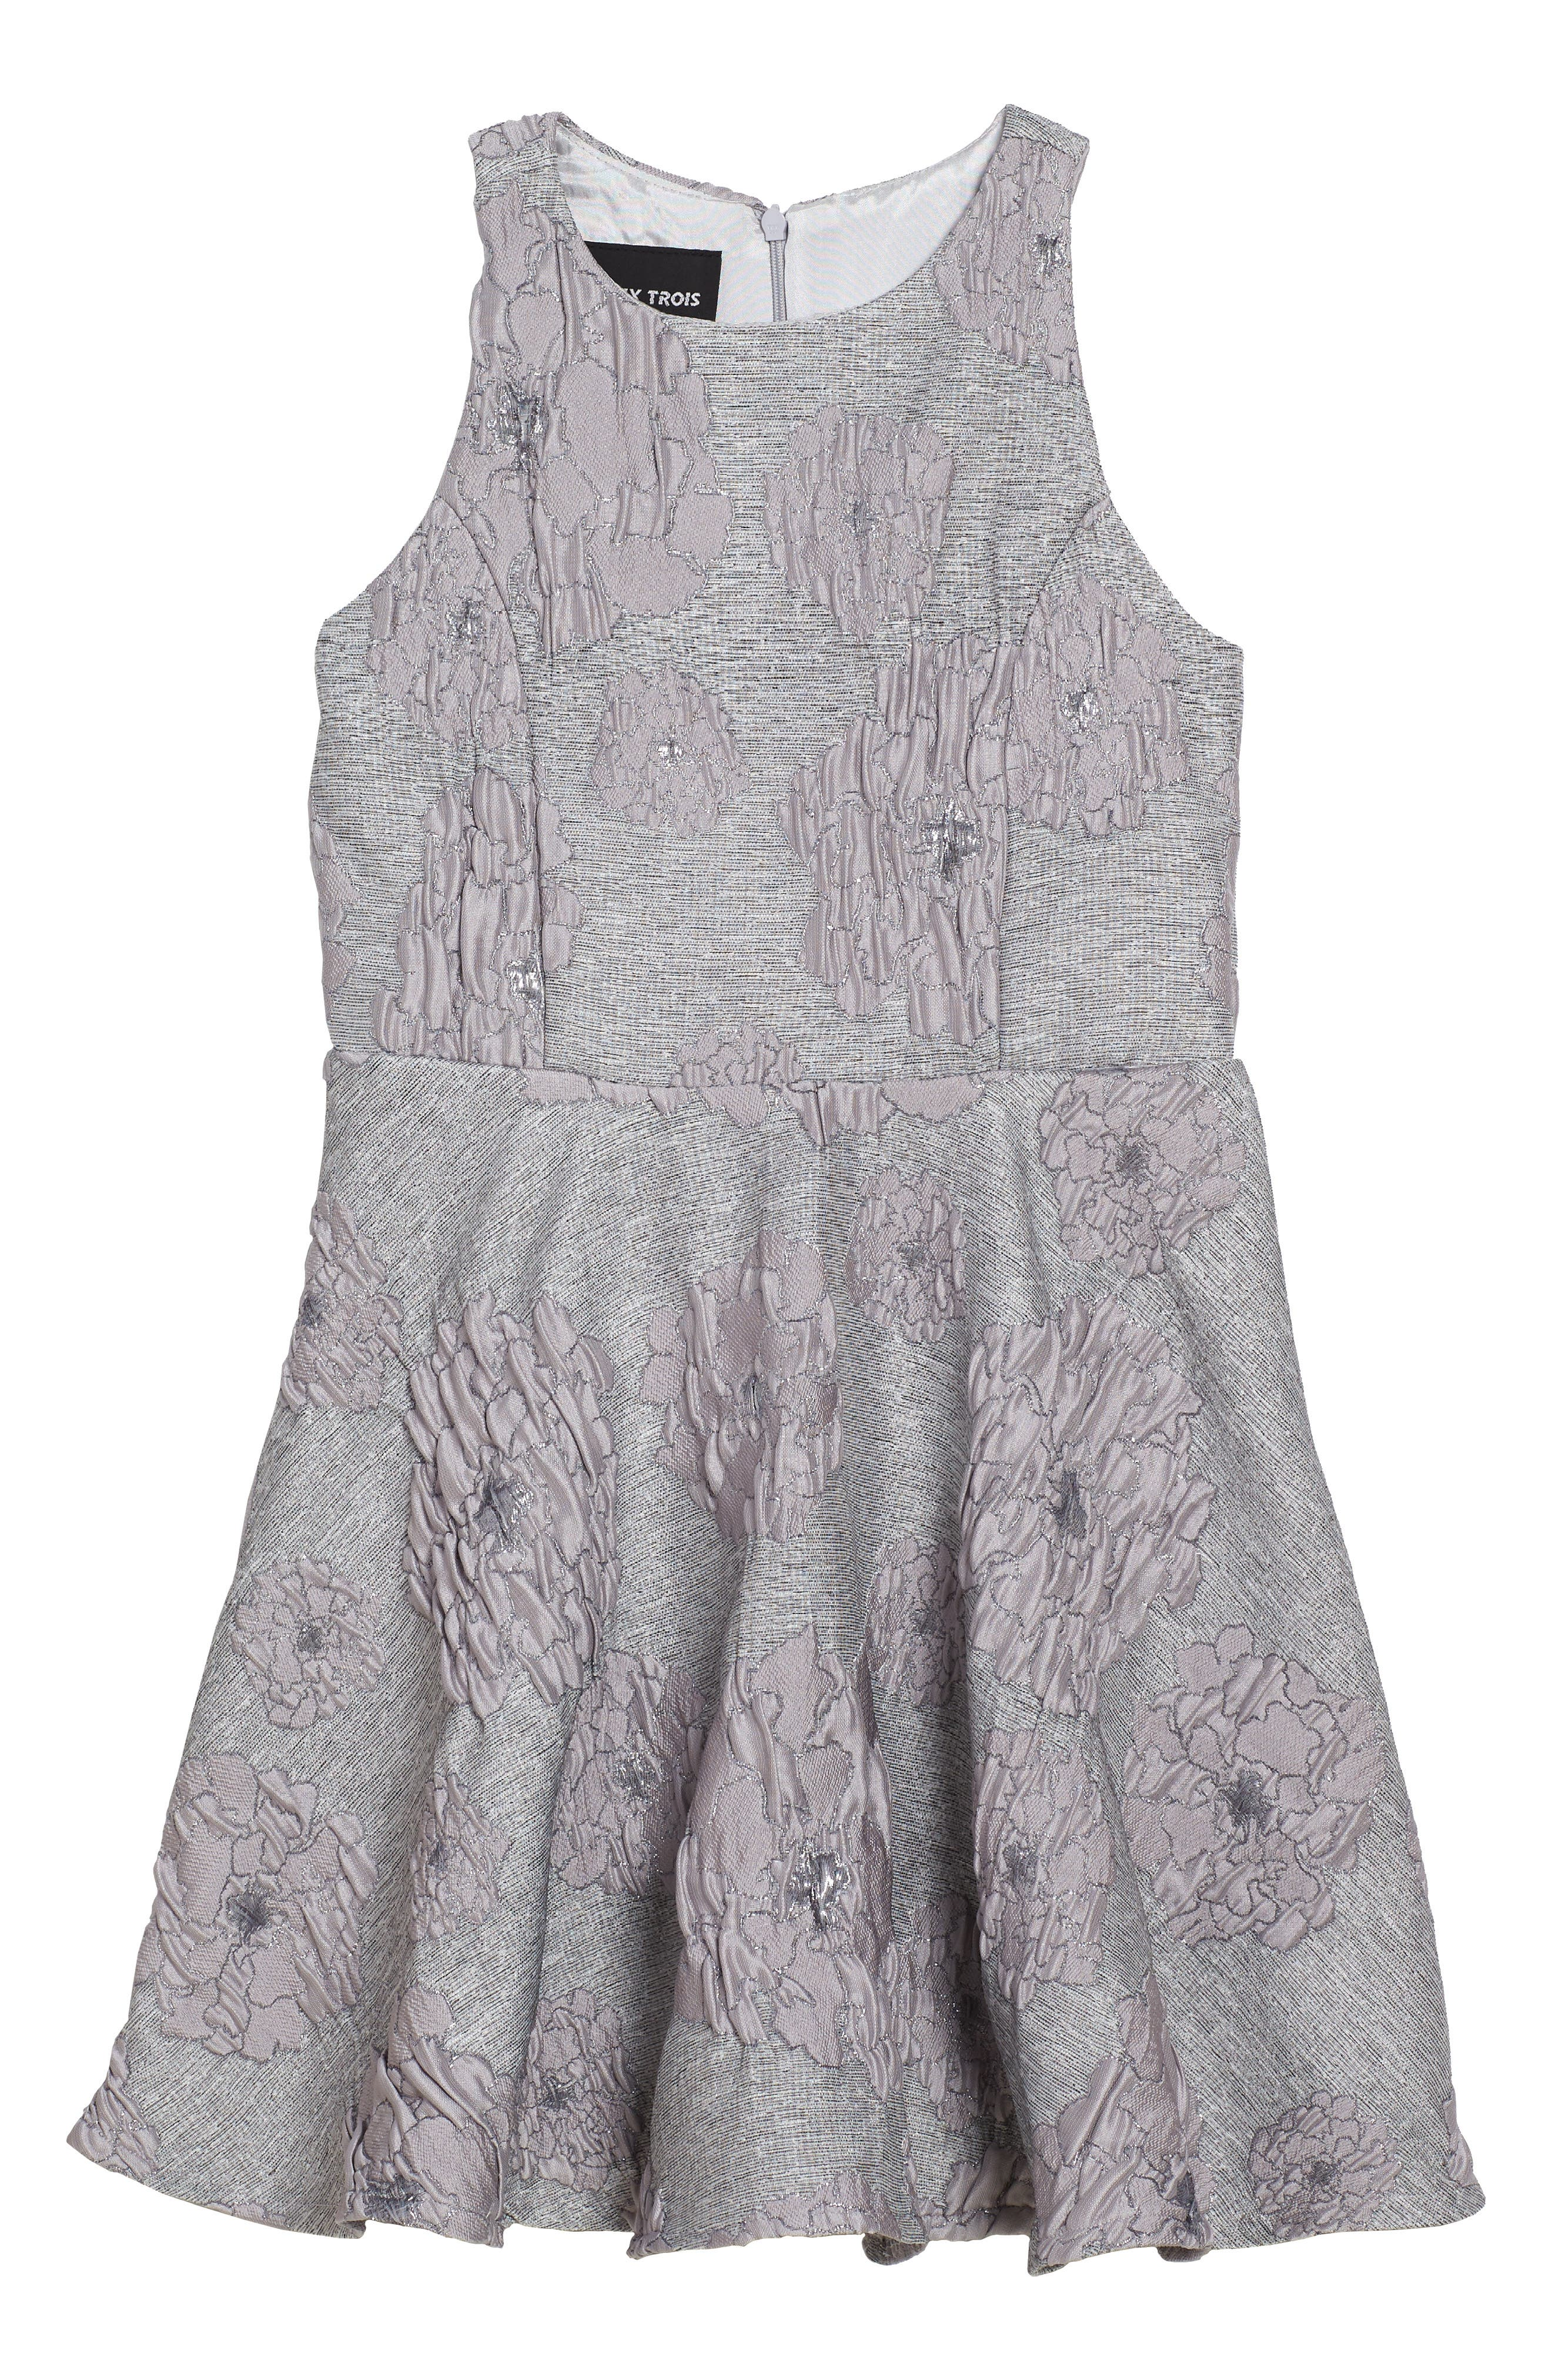 Alternate Image 1 Selected - Un Deux Trois Flocked Jacquard Skater Dress (Big Girls)